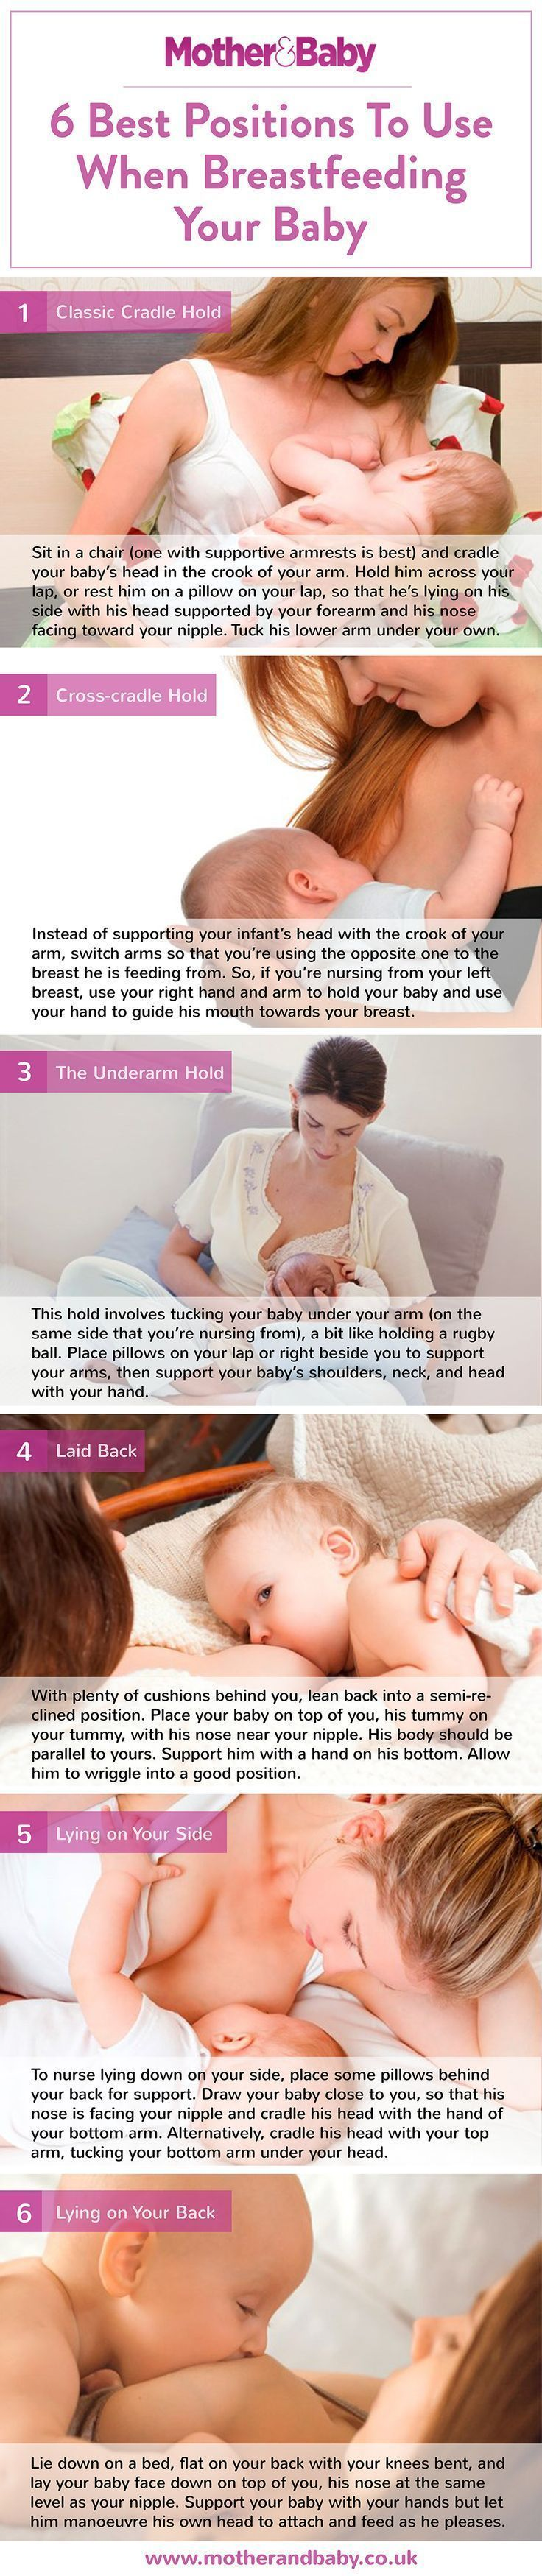 From the classic cradle hold to the rugby ball (stay with us…), there are plenty of breastfeeding positions to try until you find what works best for you and your baby